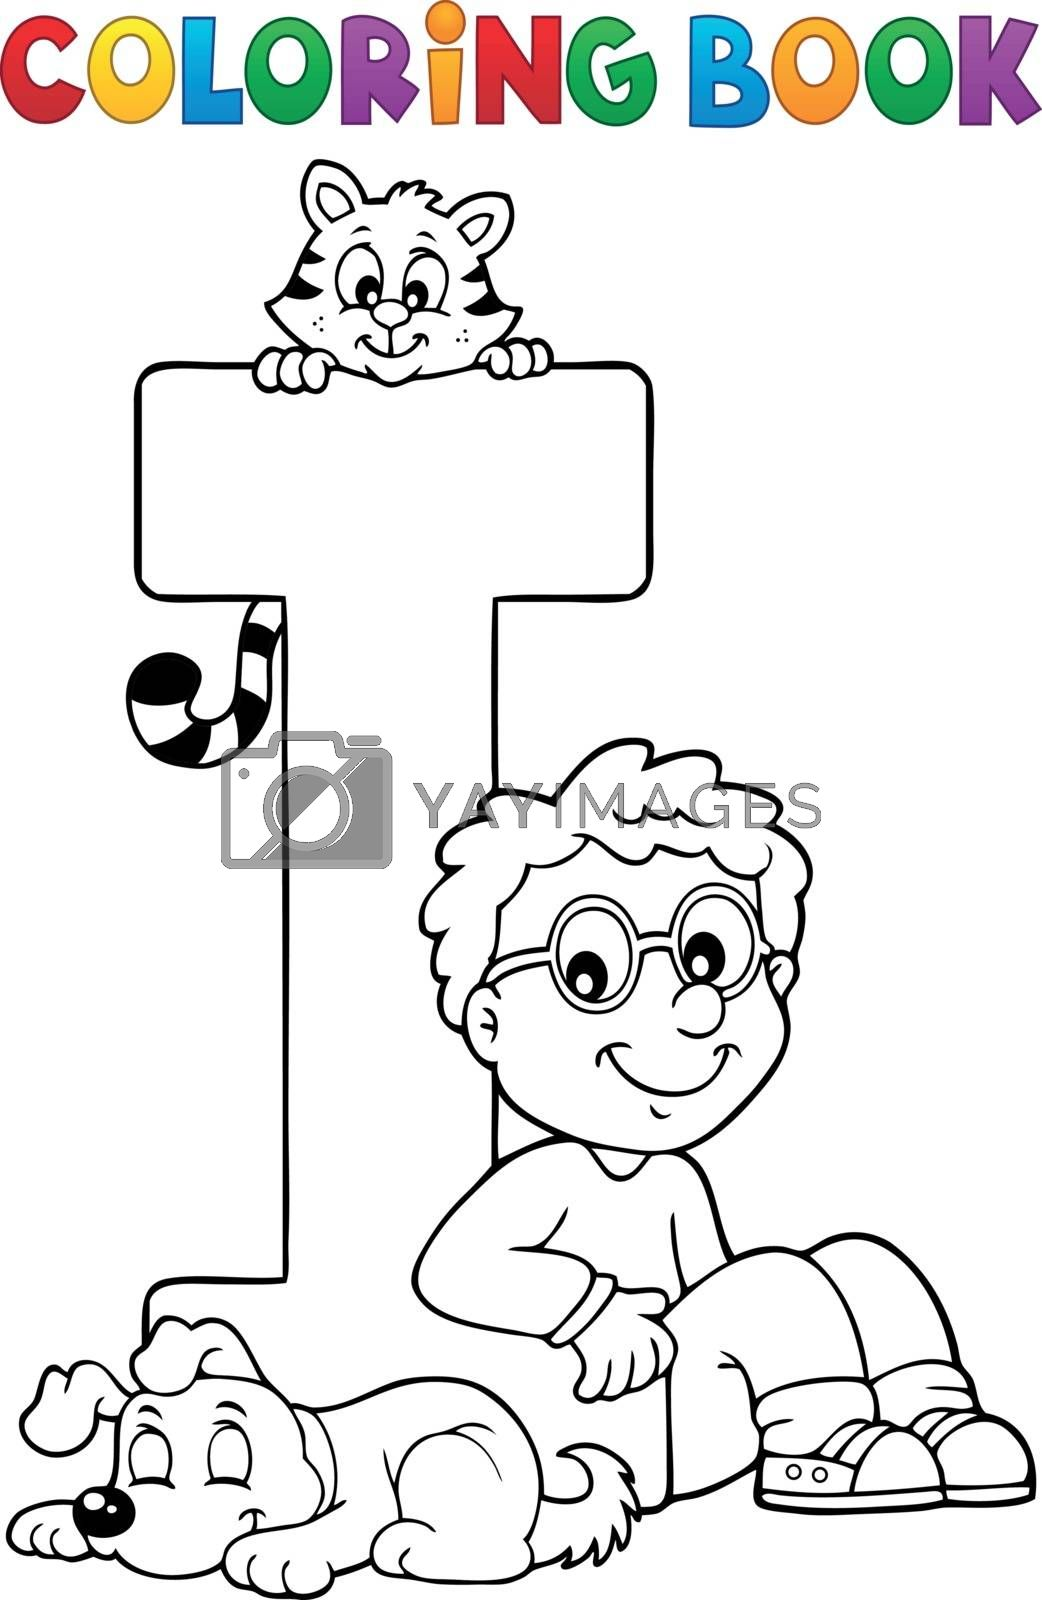 Coloring book boy and pets by letter I - eps10 vector illustration.